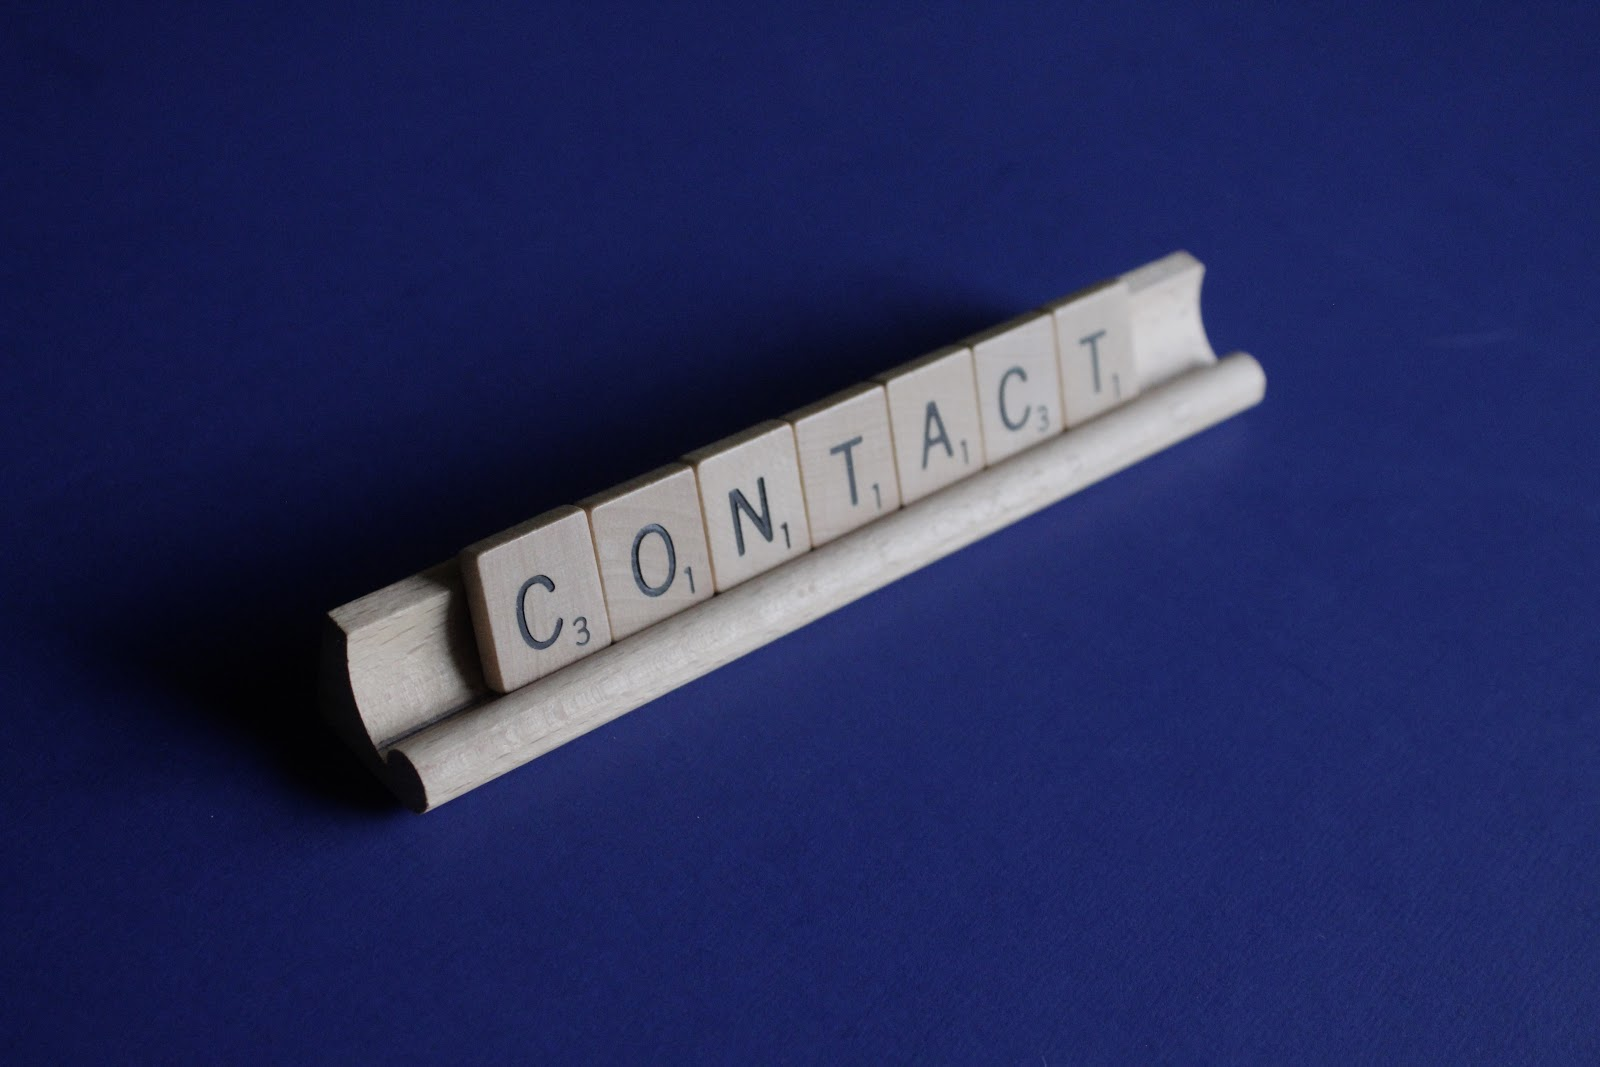 Contact made of letters from Scrabble game